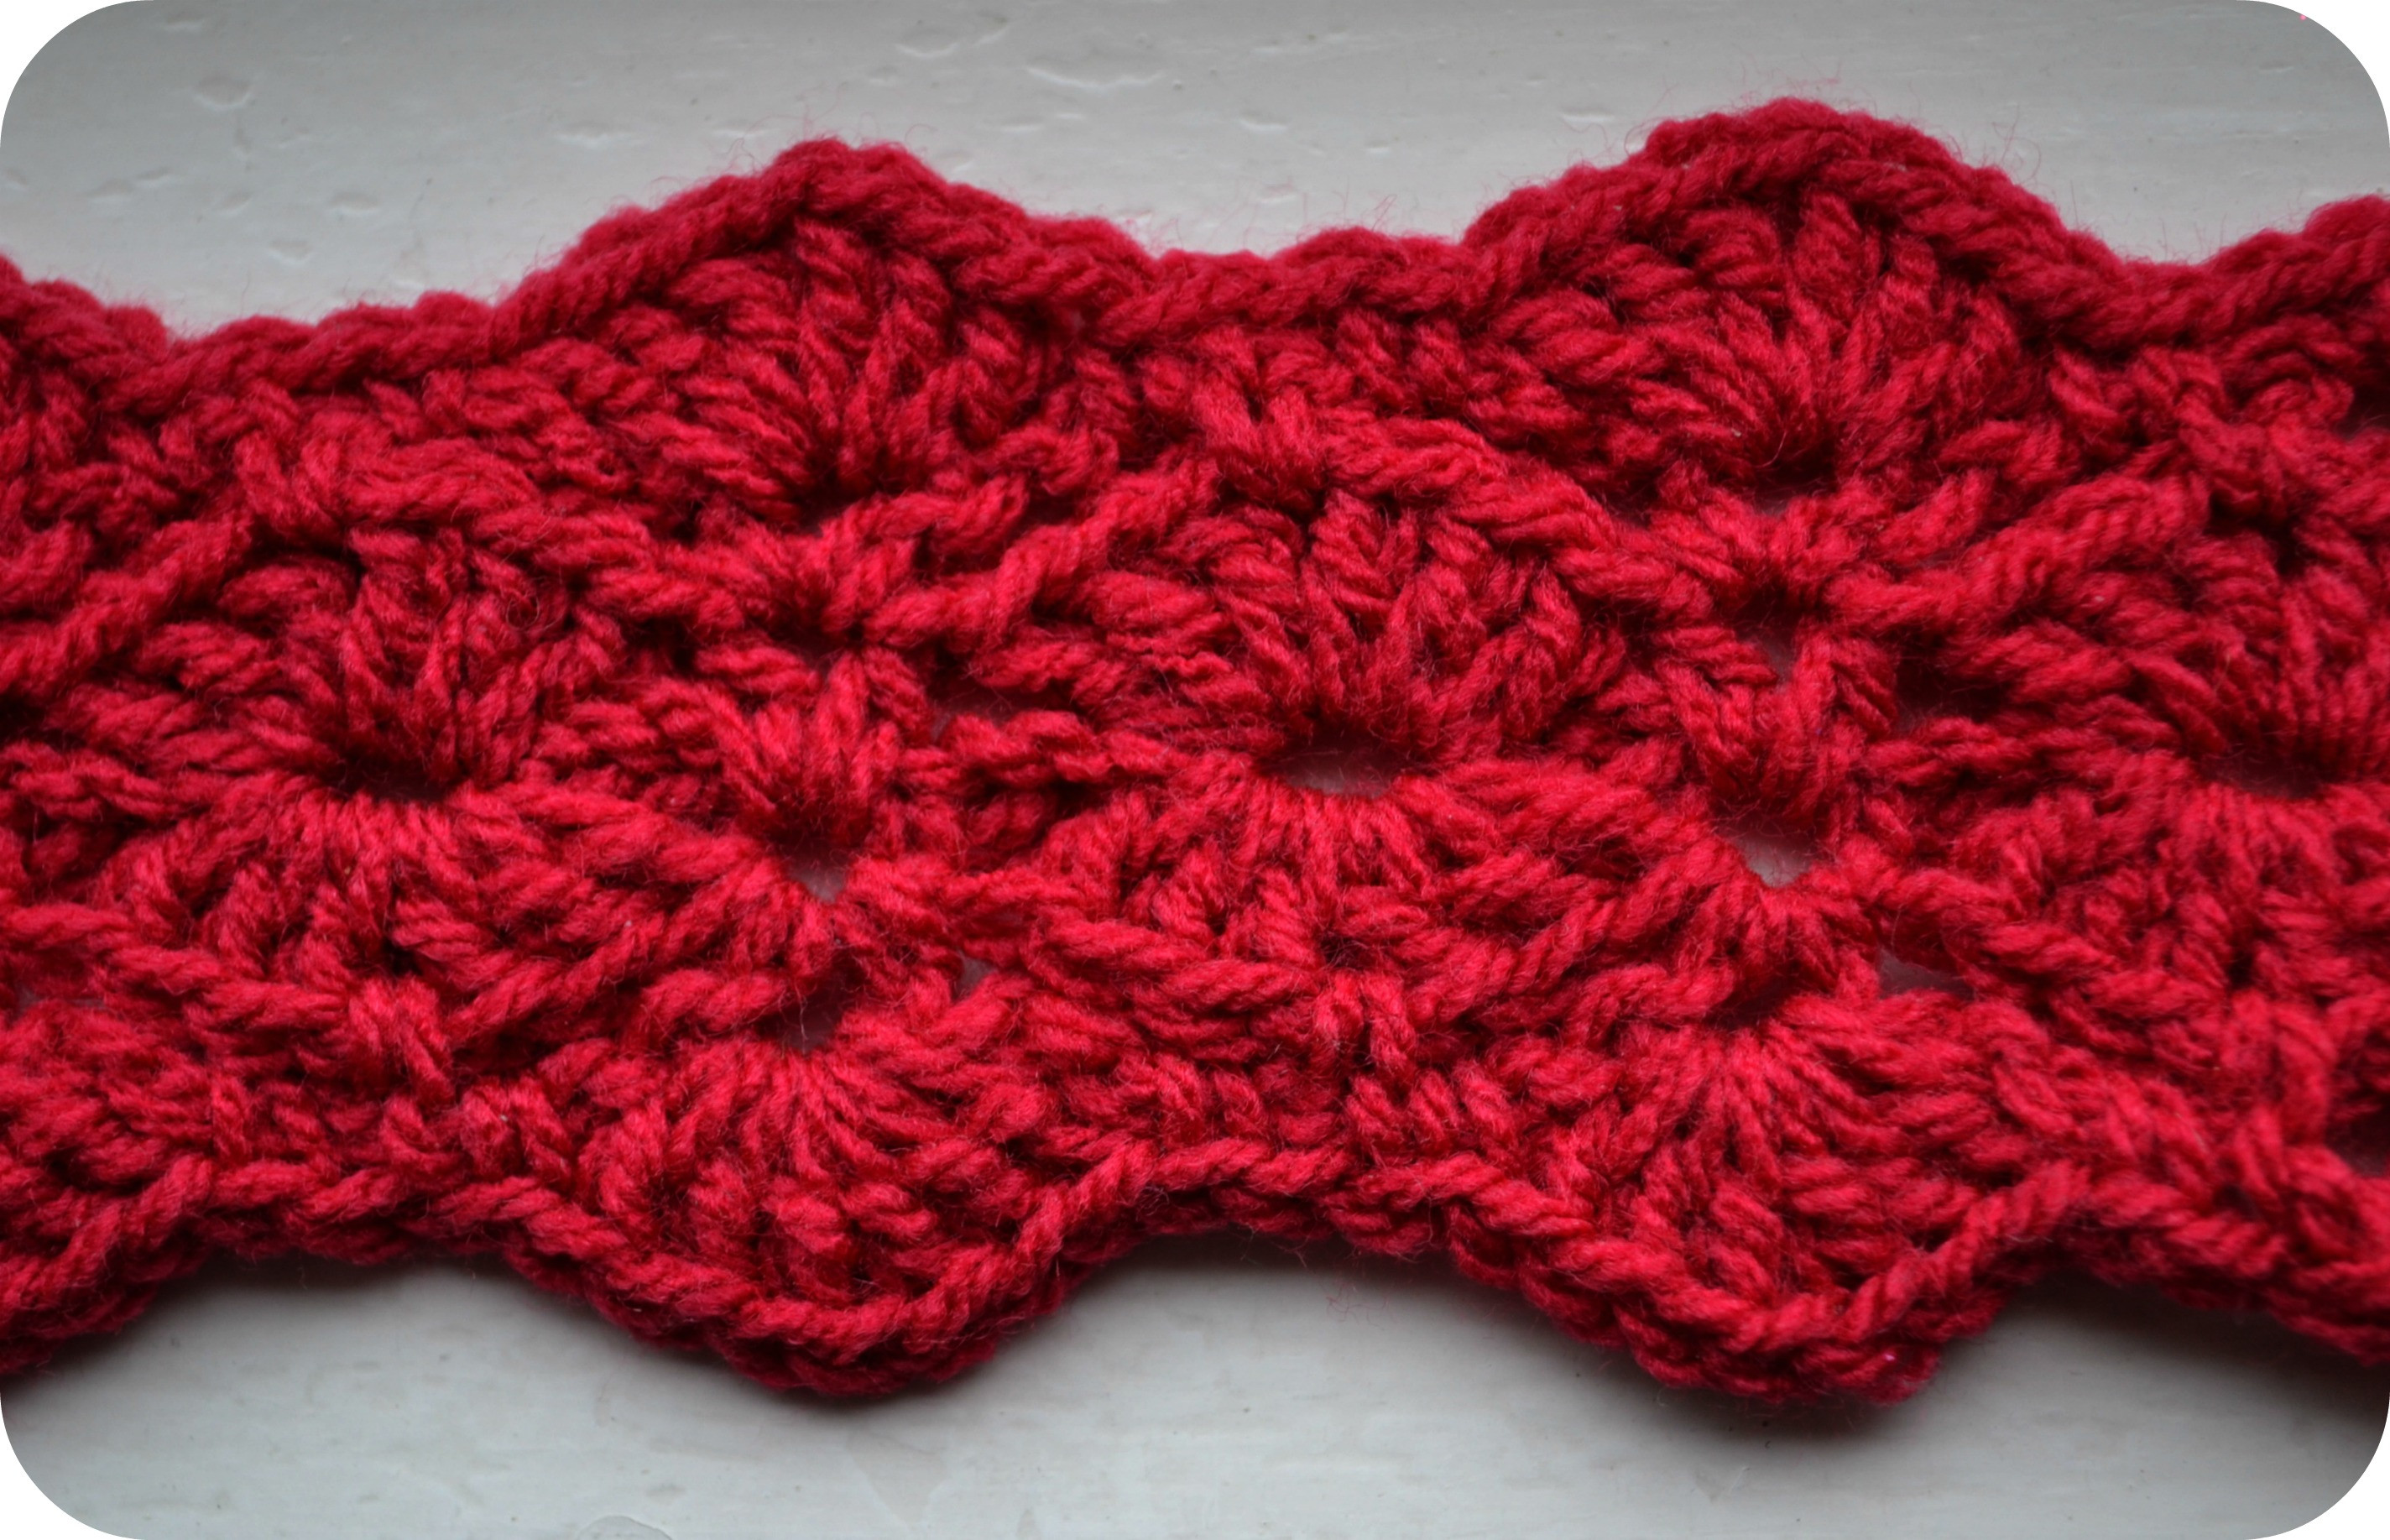 Luxury New Crochet Patterns Free New Crochet Stitches Of Adorable 47 Photos New Crochet Stitches